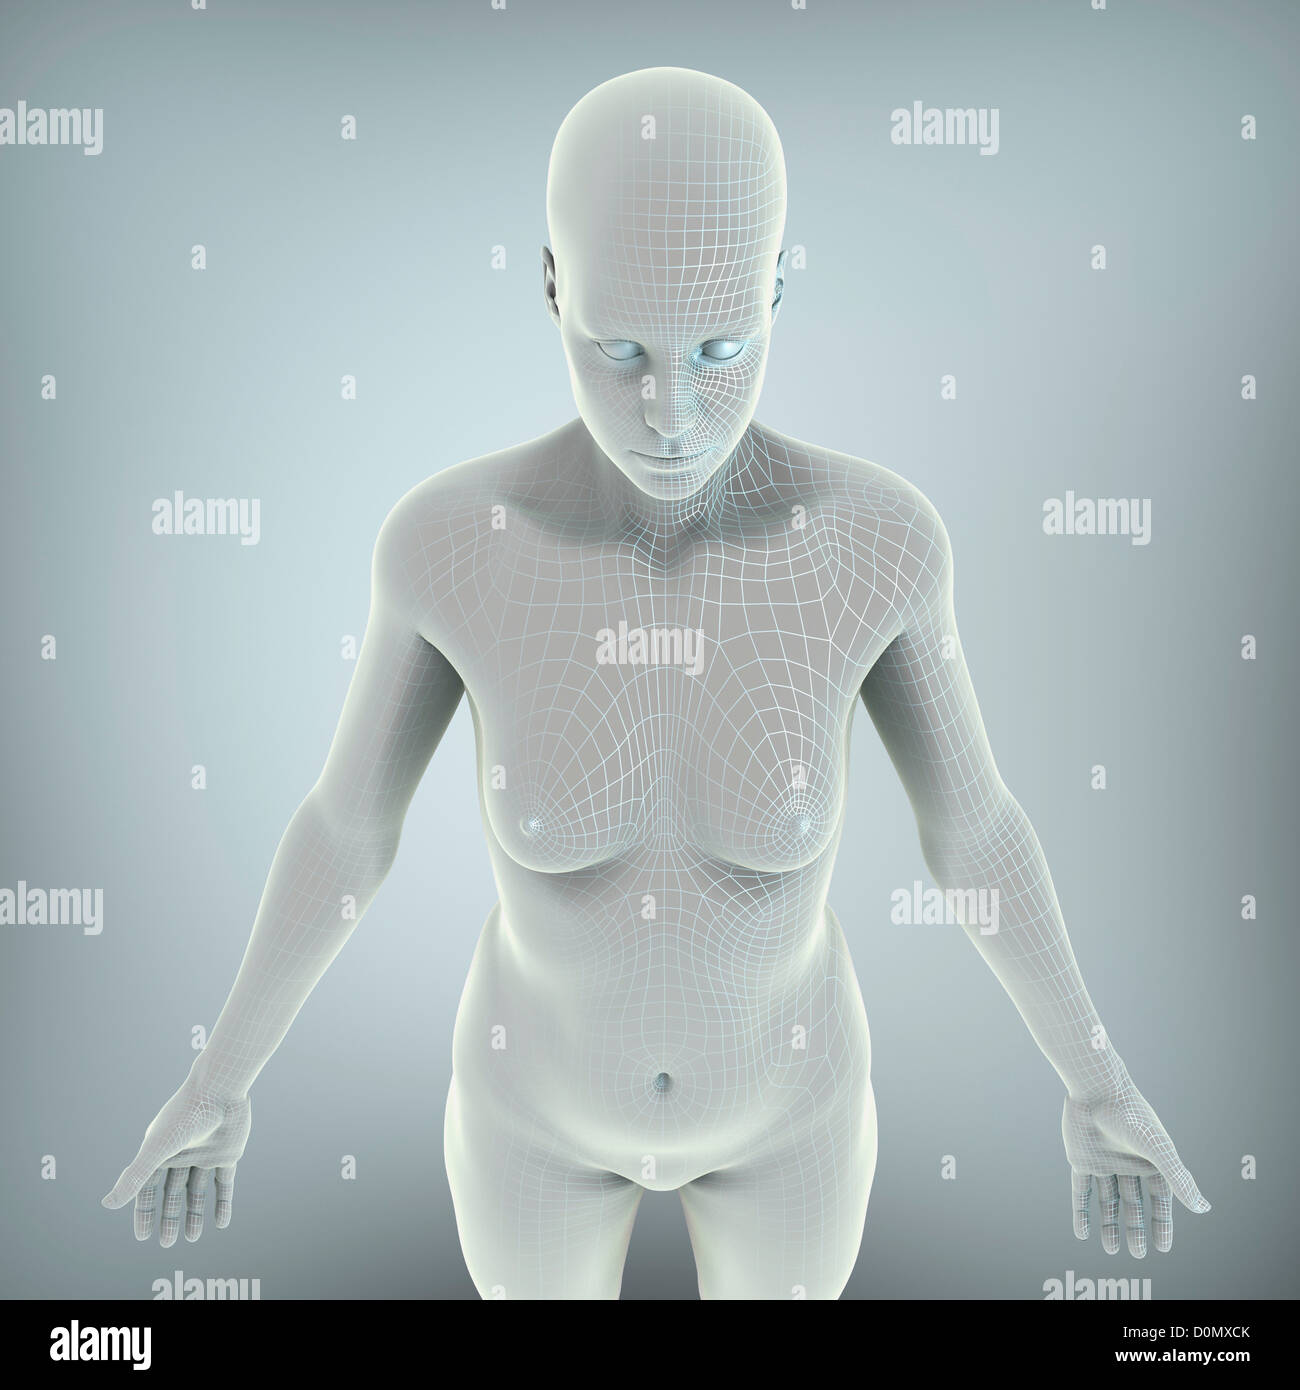 Wire frame model layered over a body to represent a digital human ...